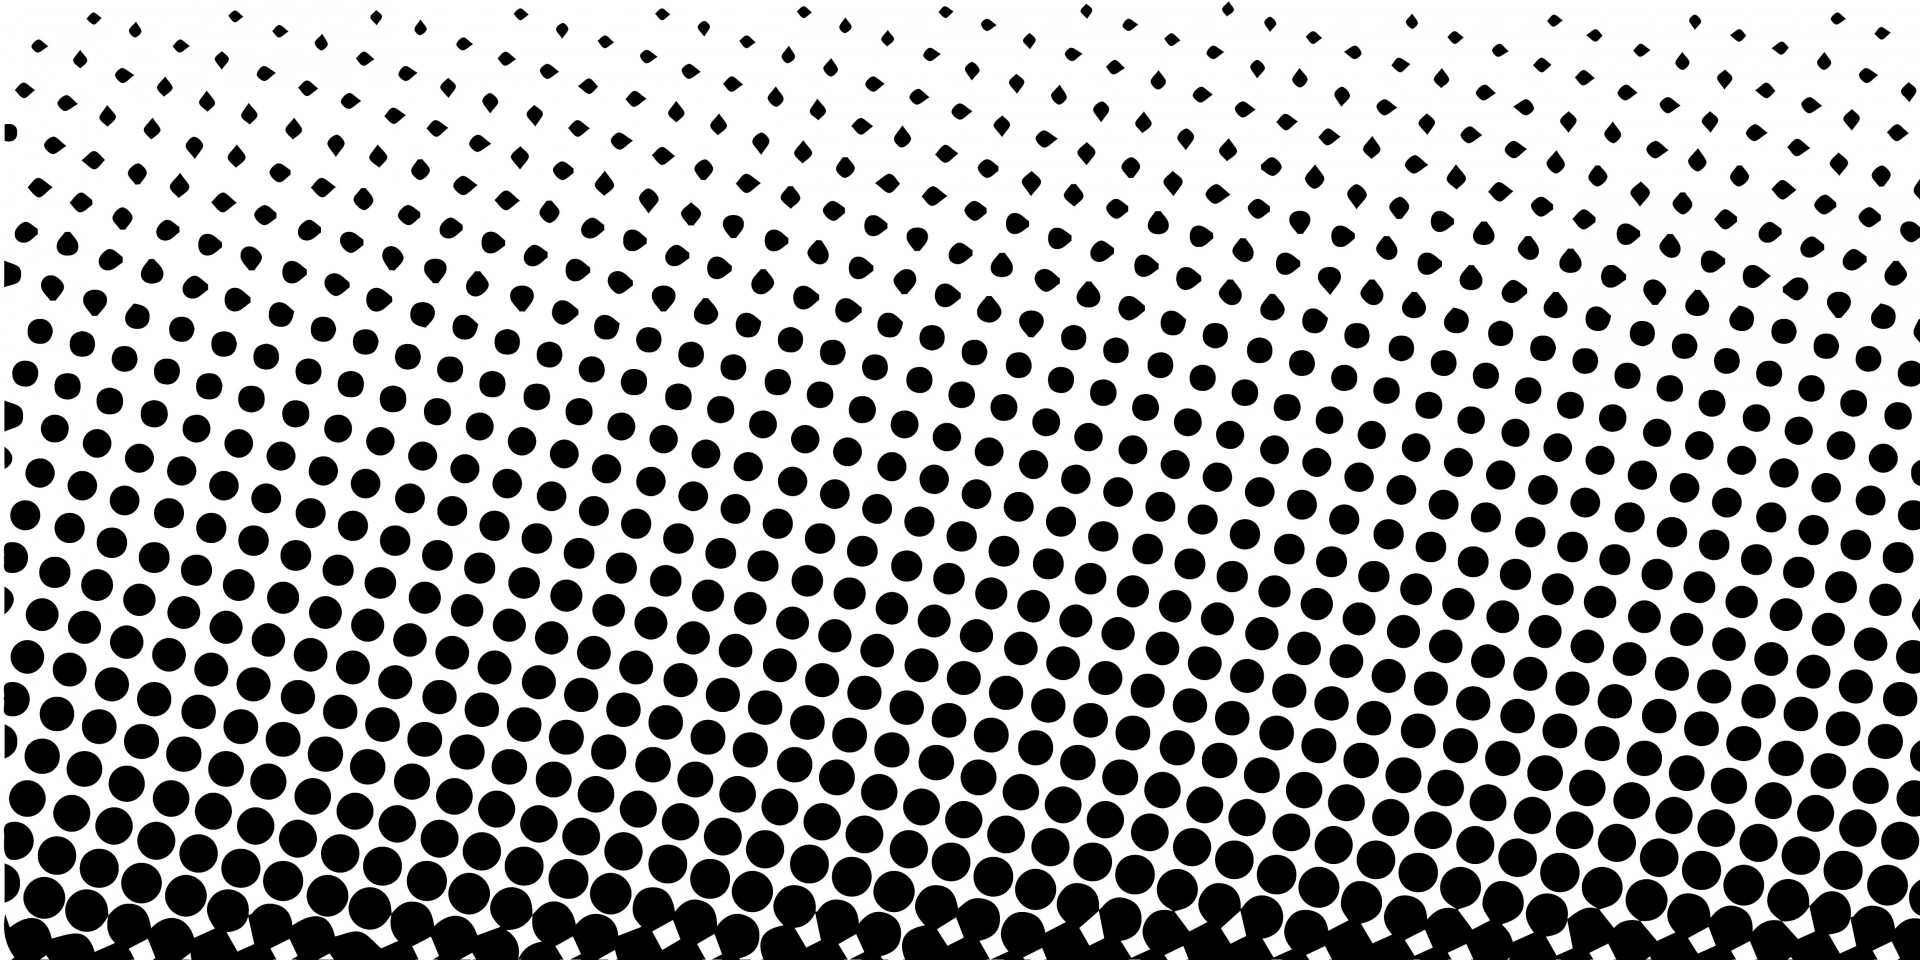 Texture clipart halftone pattern #3